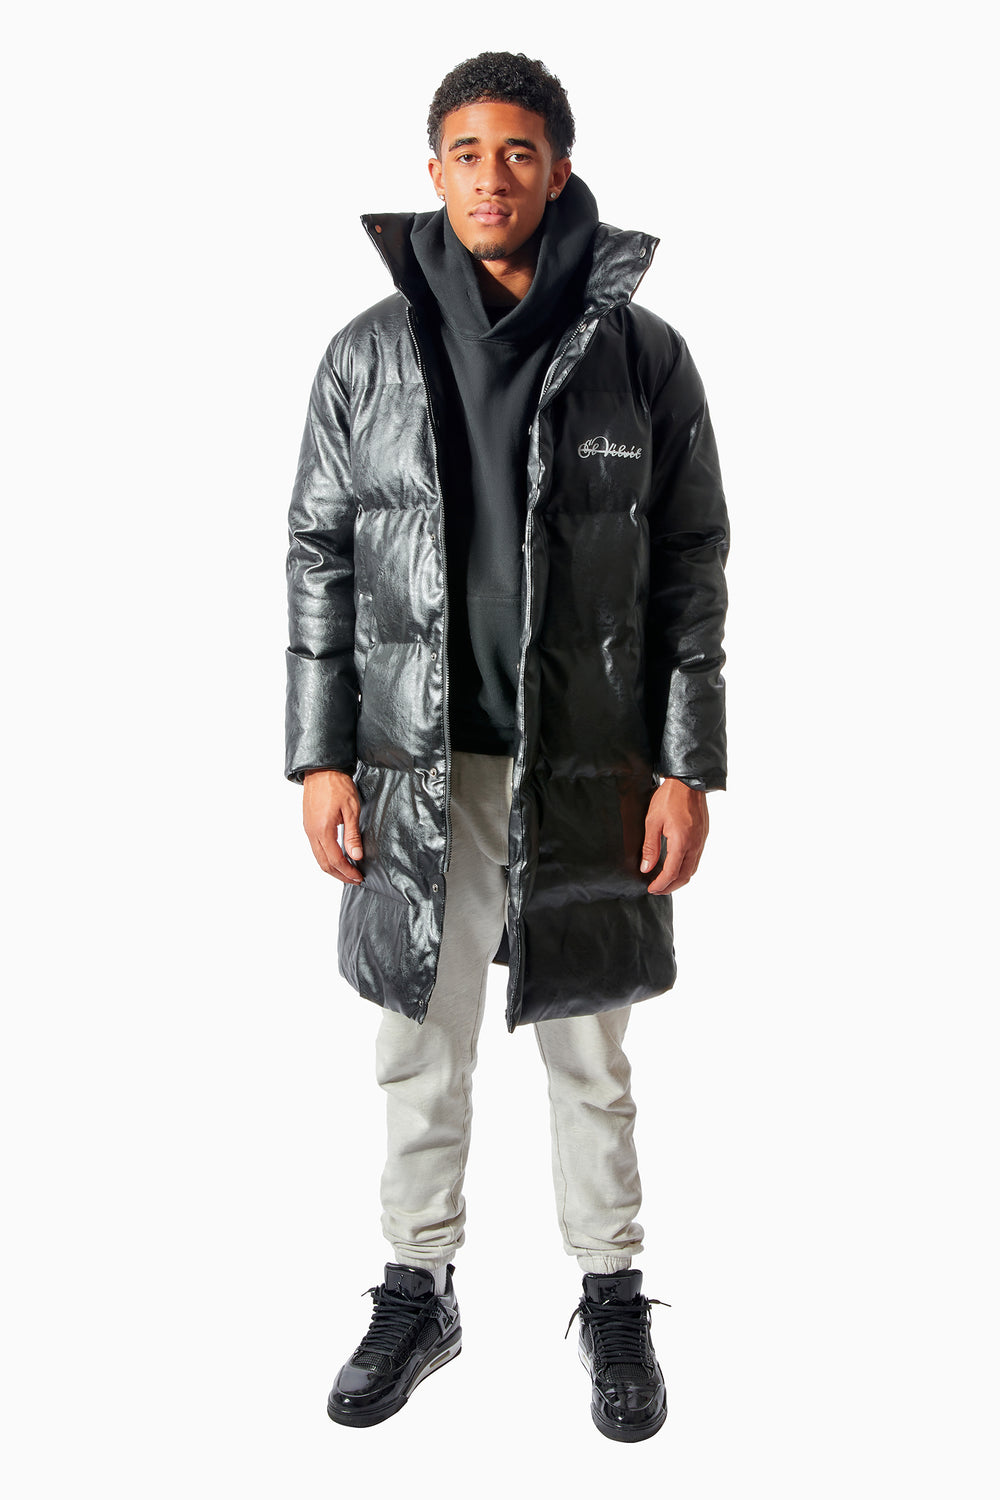 Black Leather Kings Long Puffer 1:1